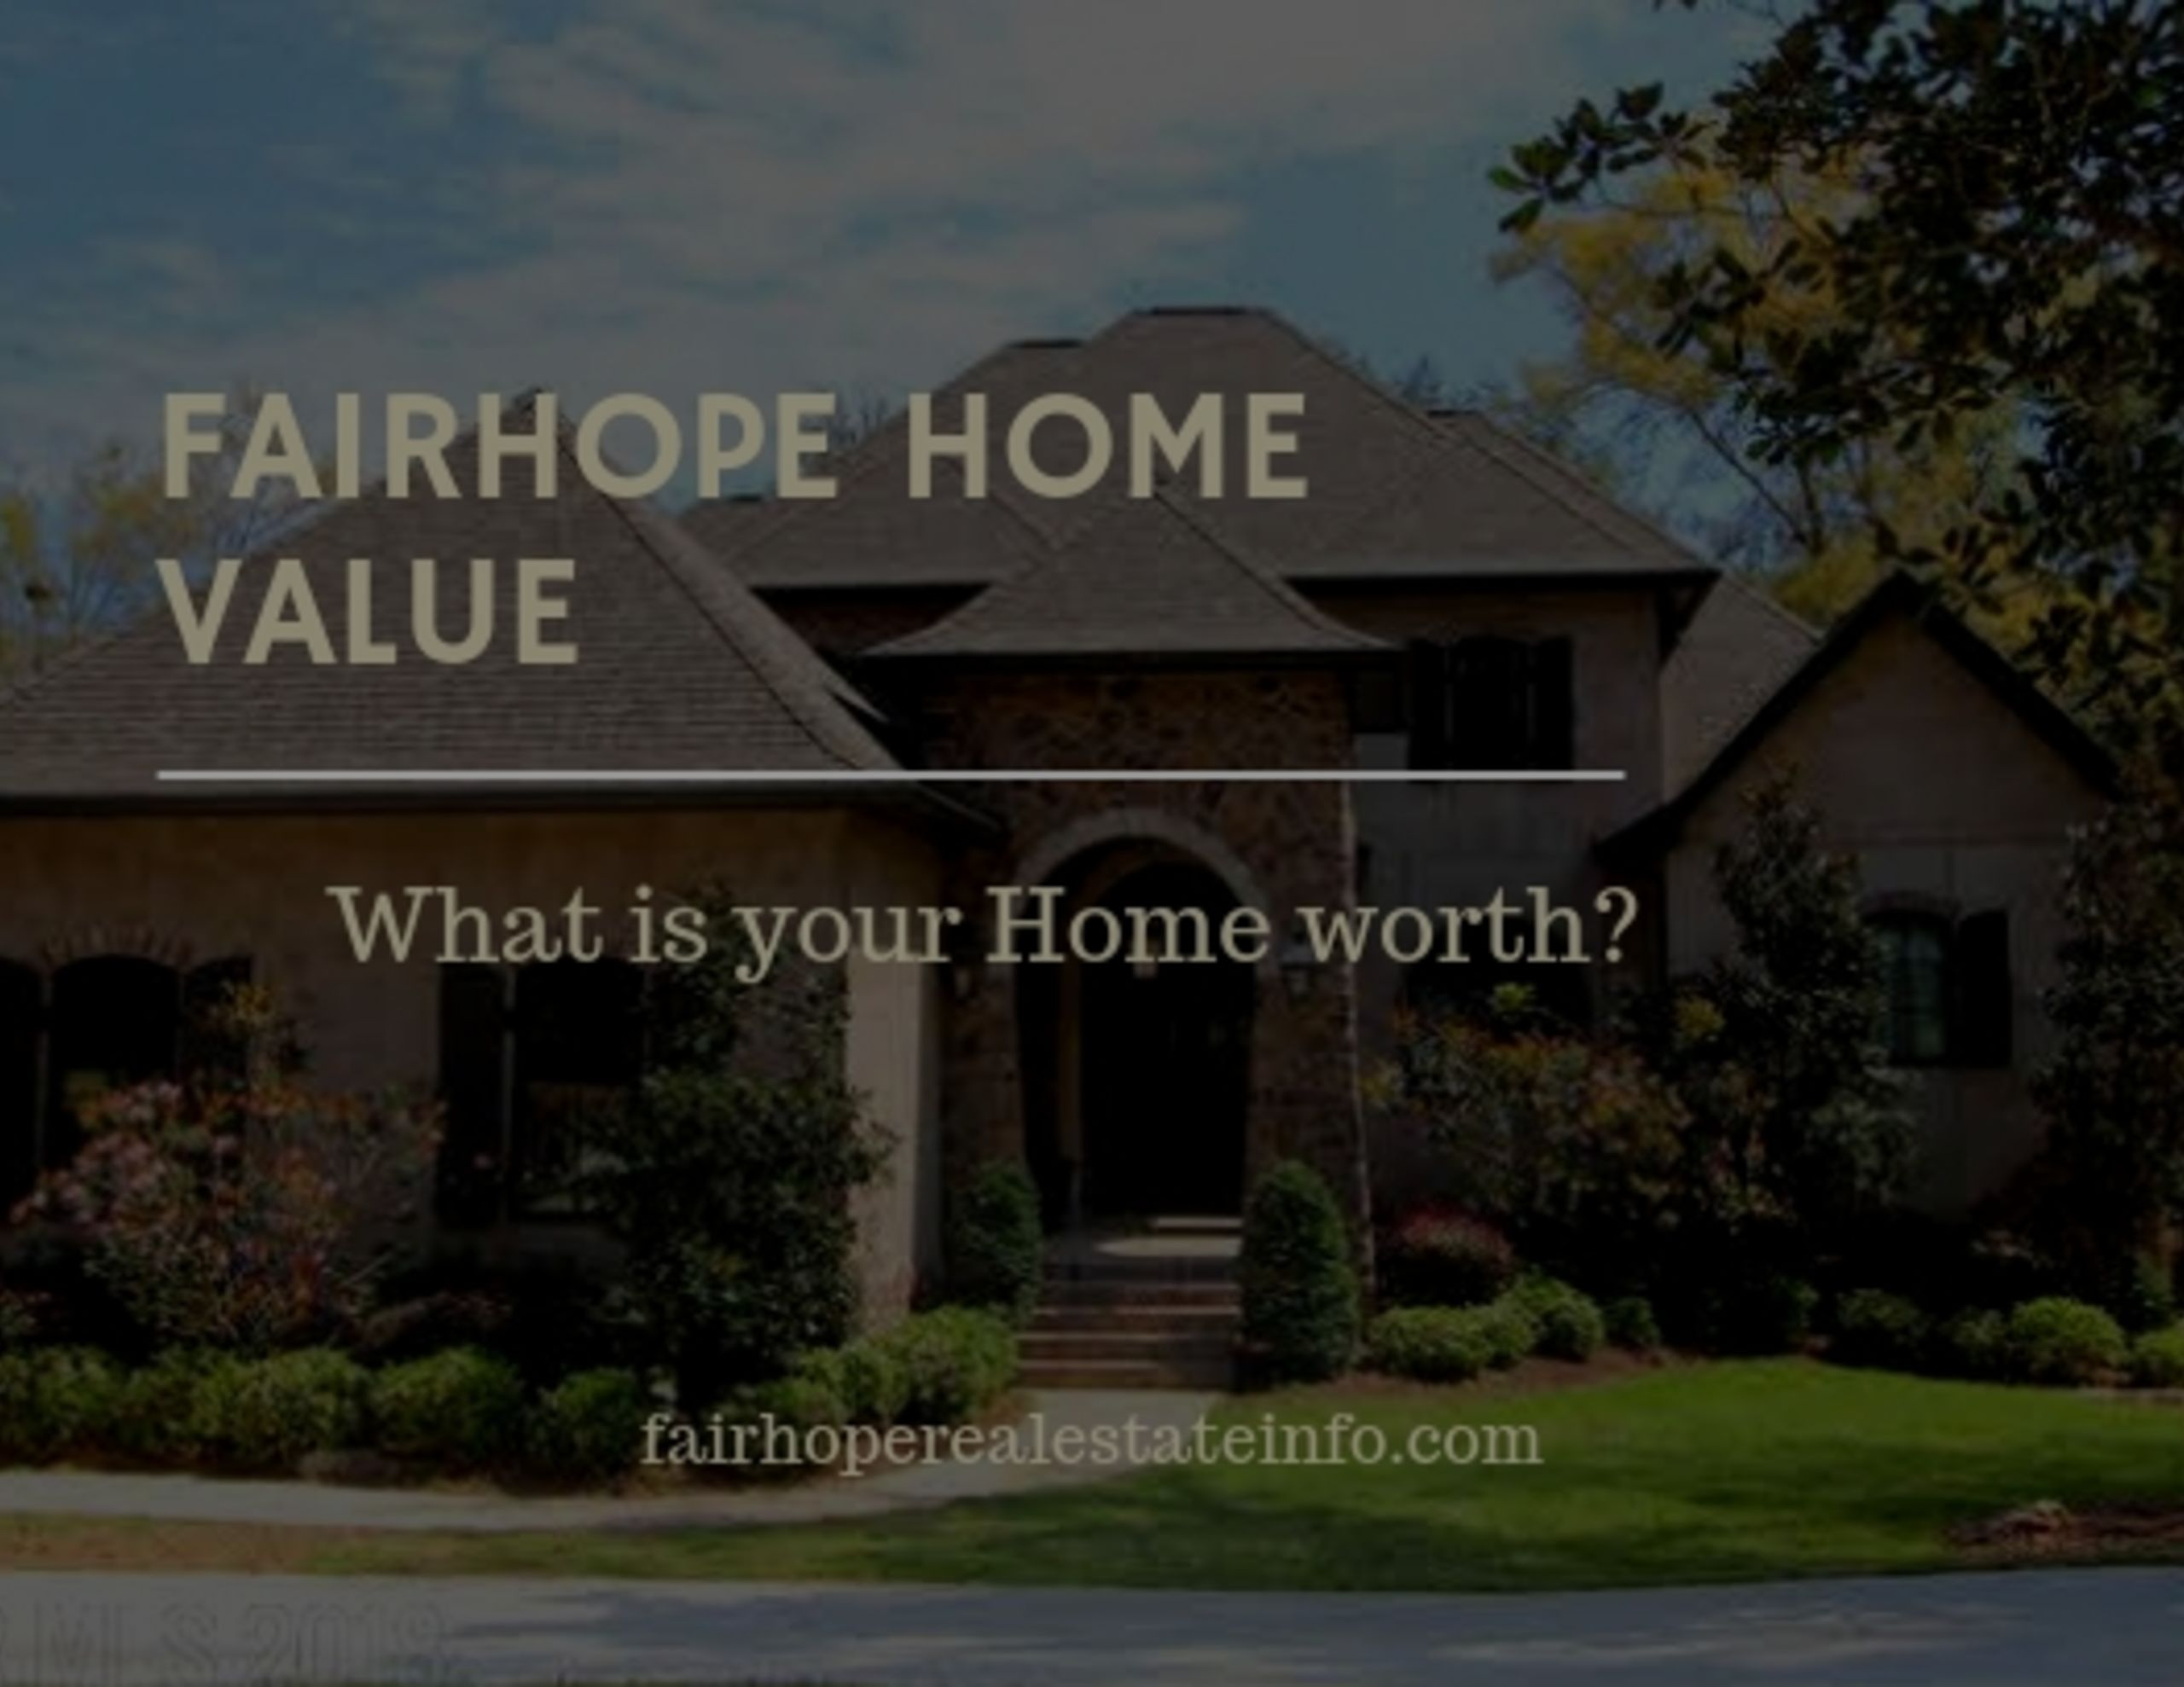 Fairhope Home Value